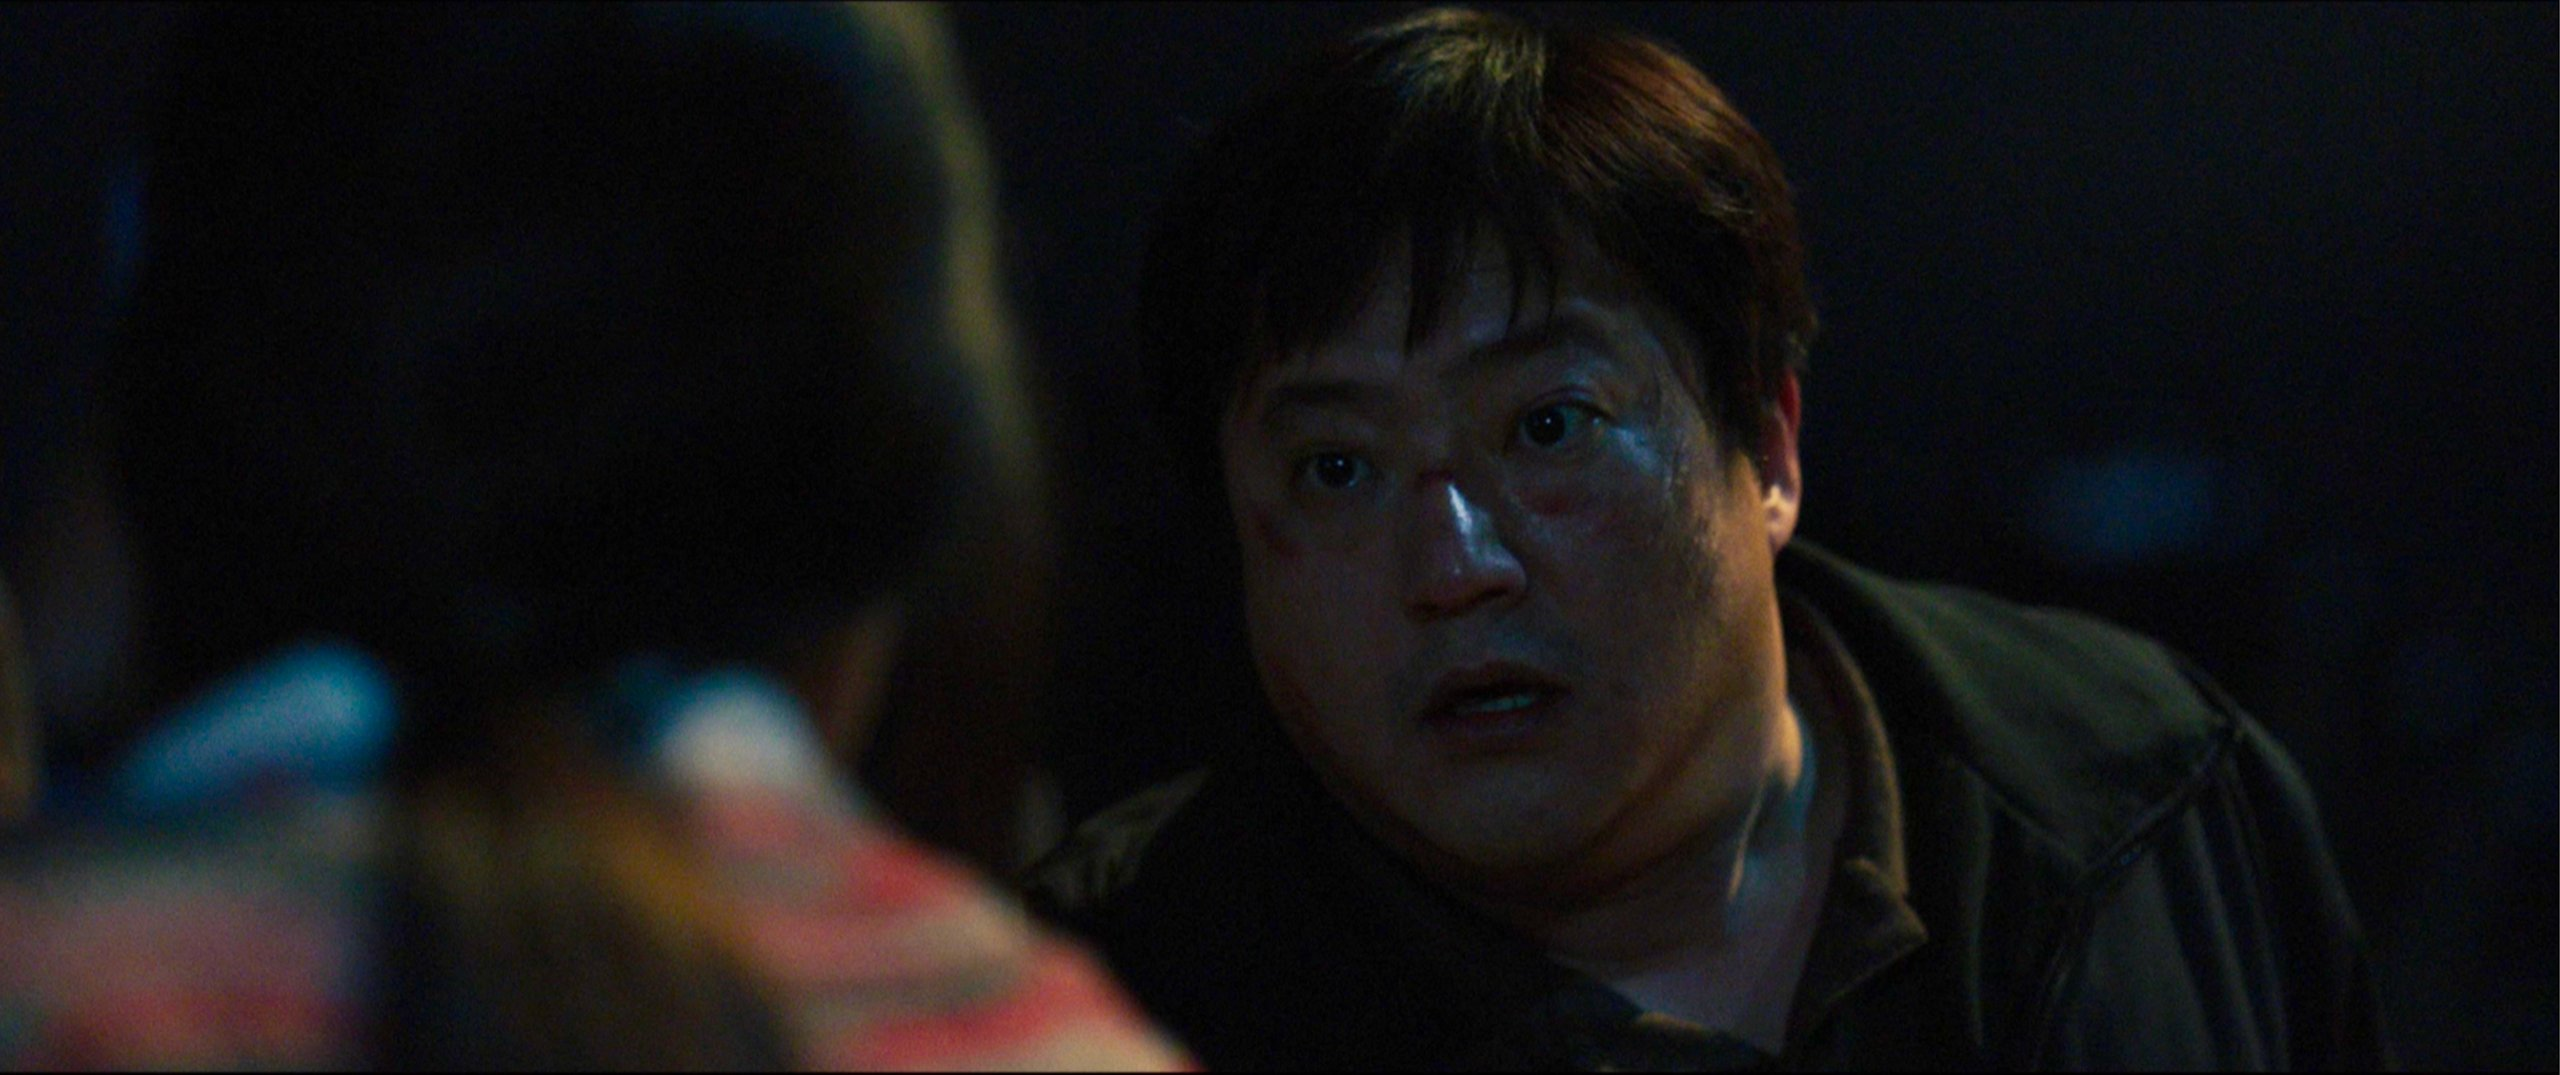 Jong-goo doesn't know if he can believe Moo-myung (The Woman in White) in The Wailing